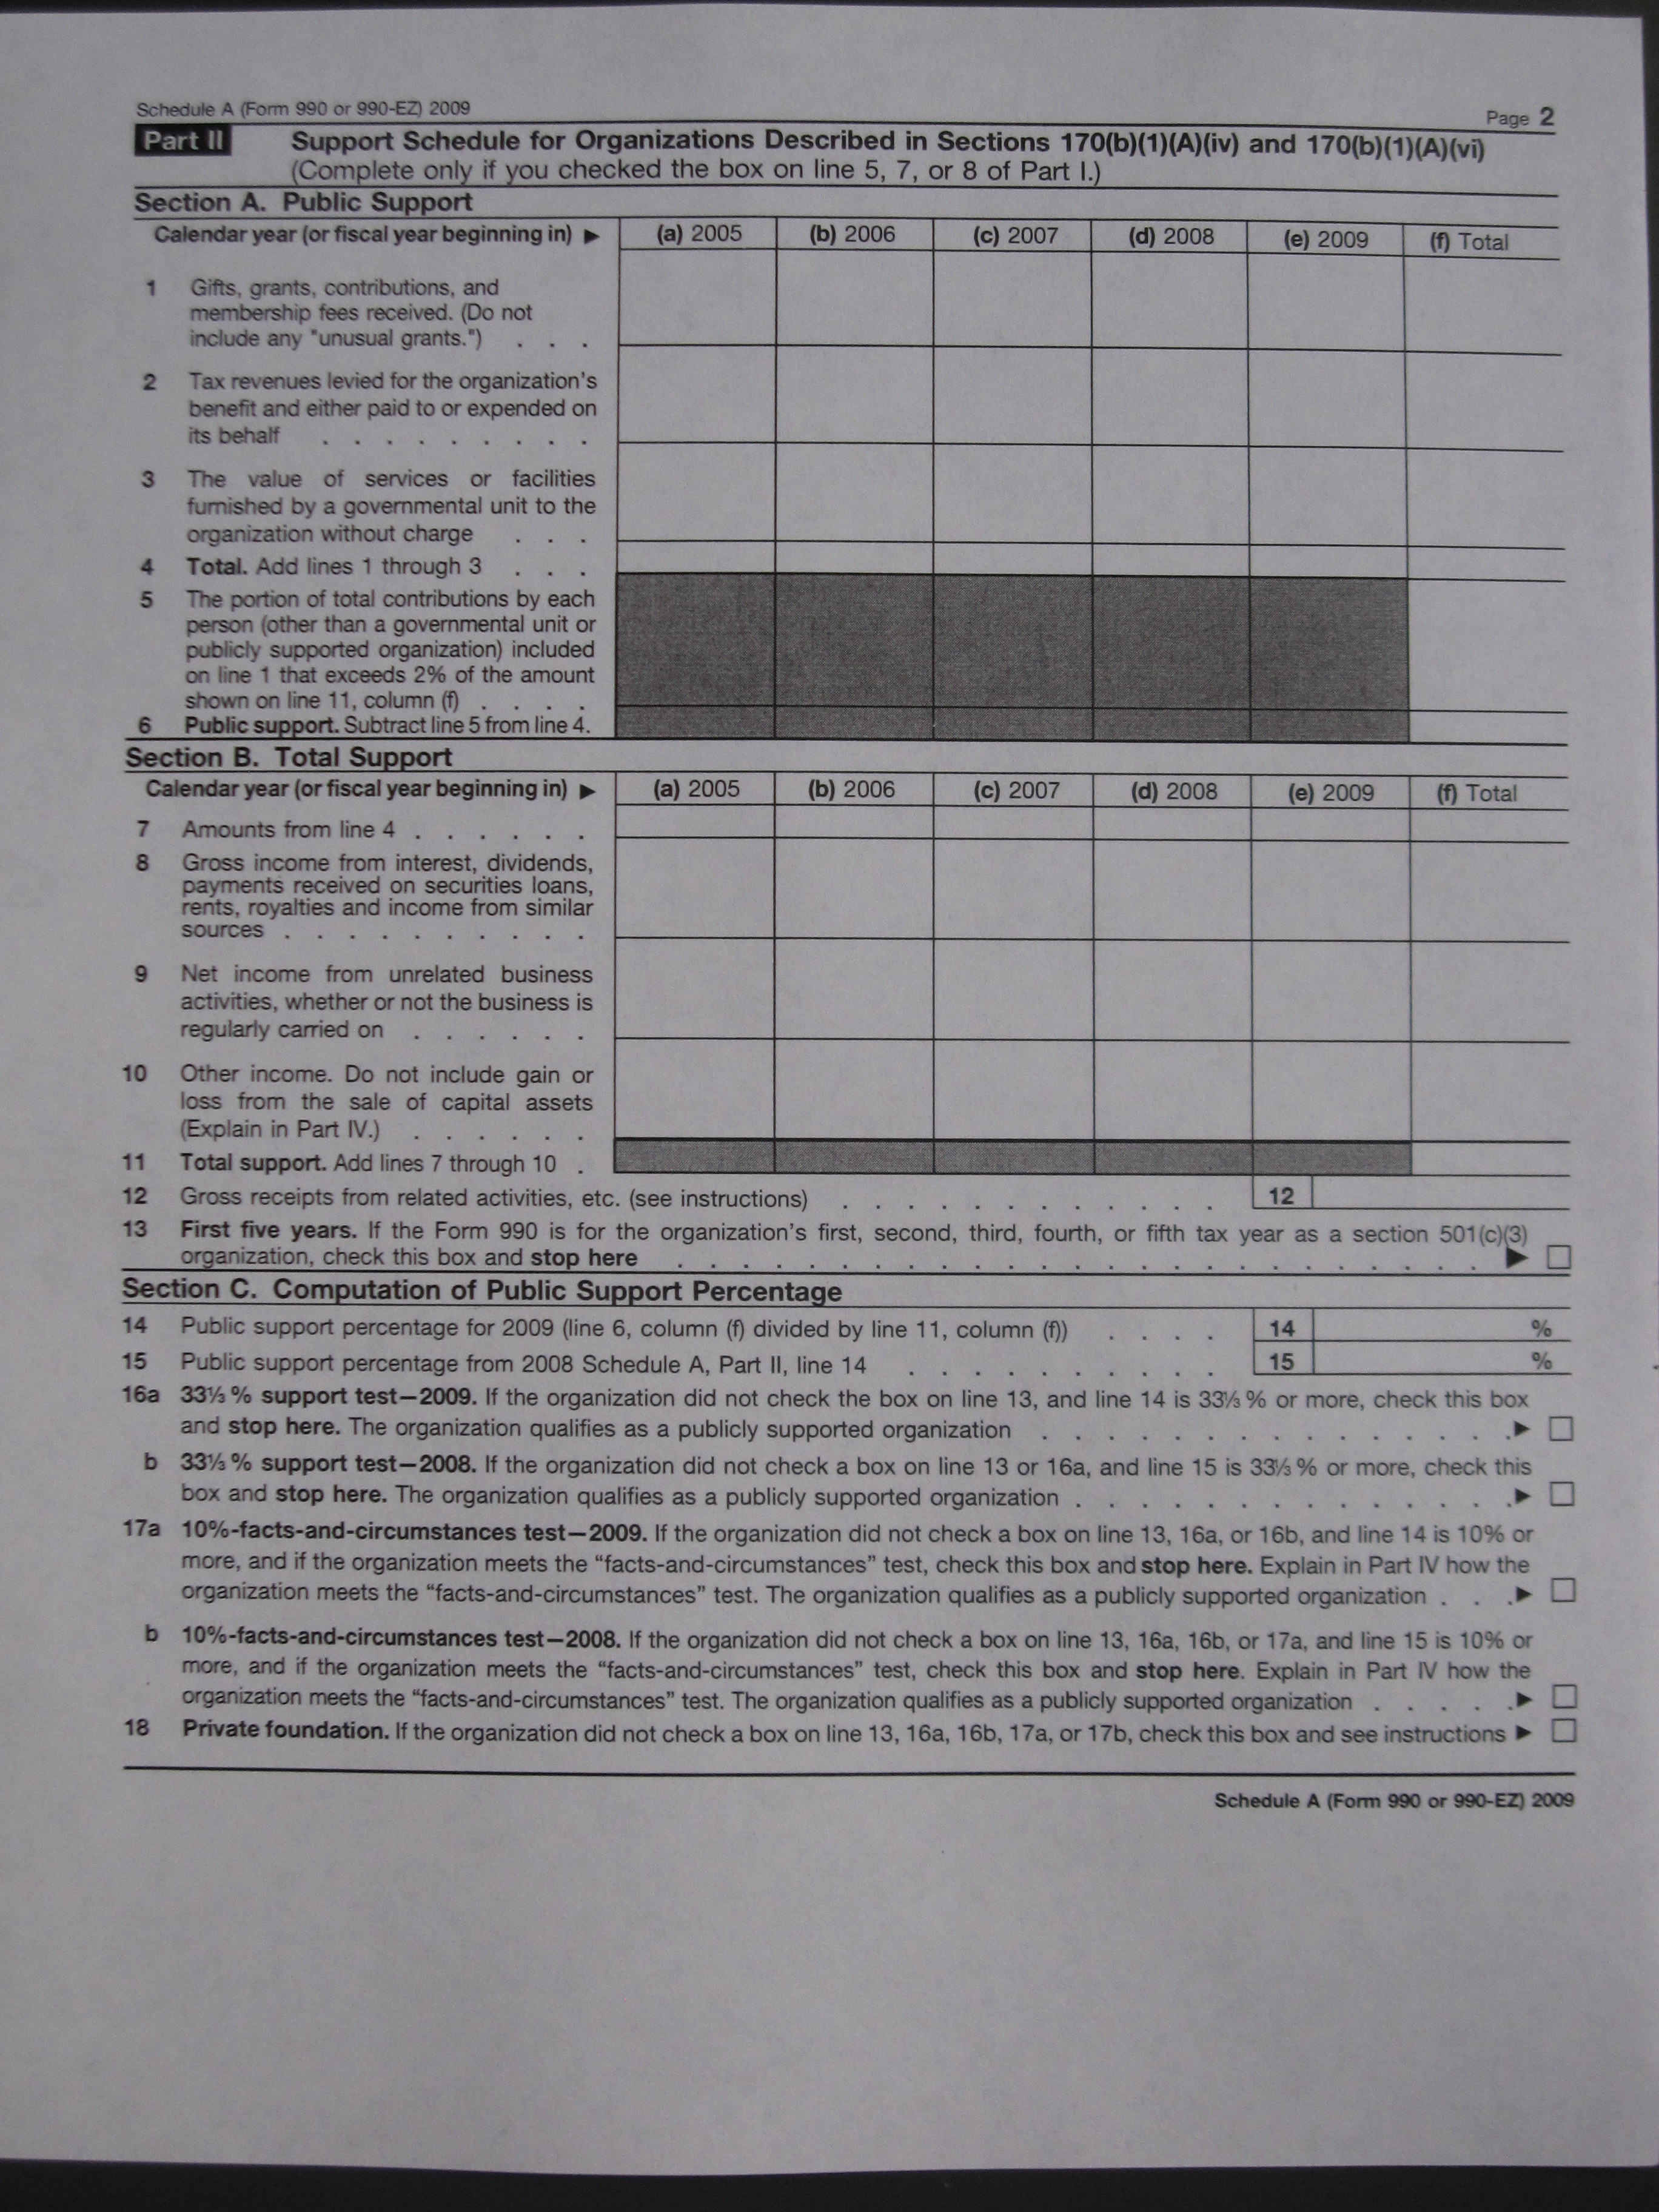 Federal Tax Schedule 1 2009 http://questioncopyright.org/corporation